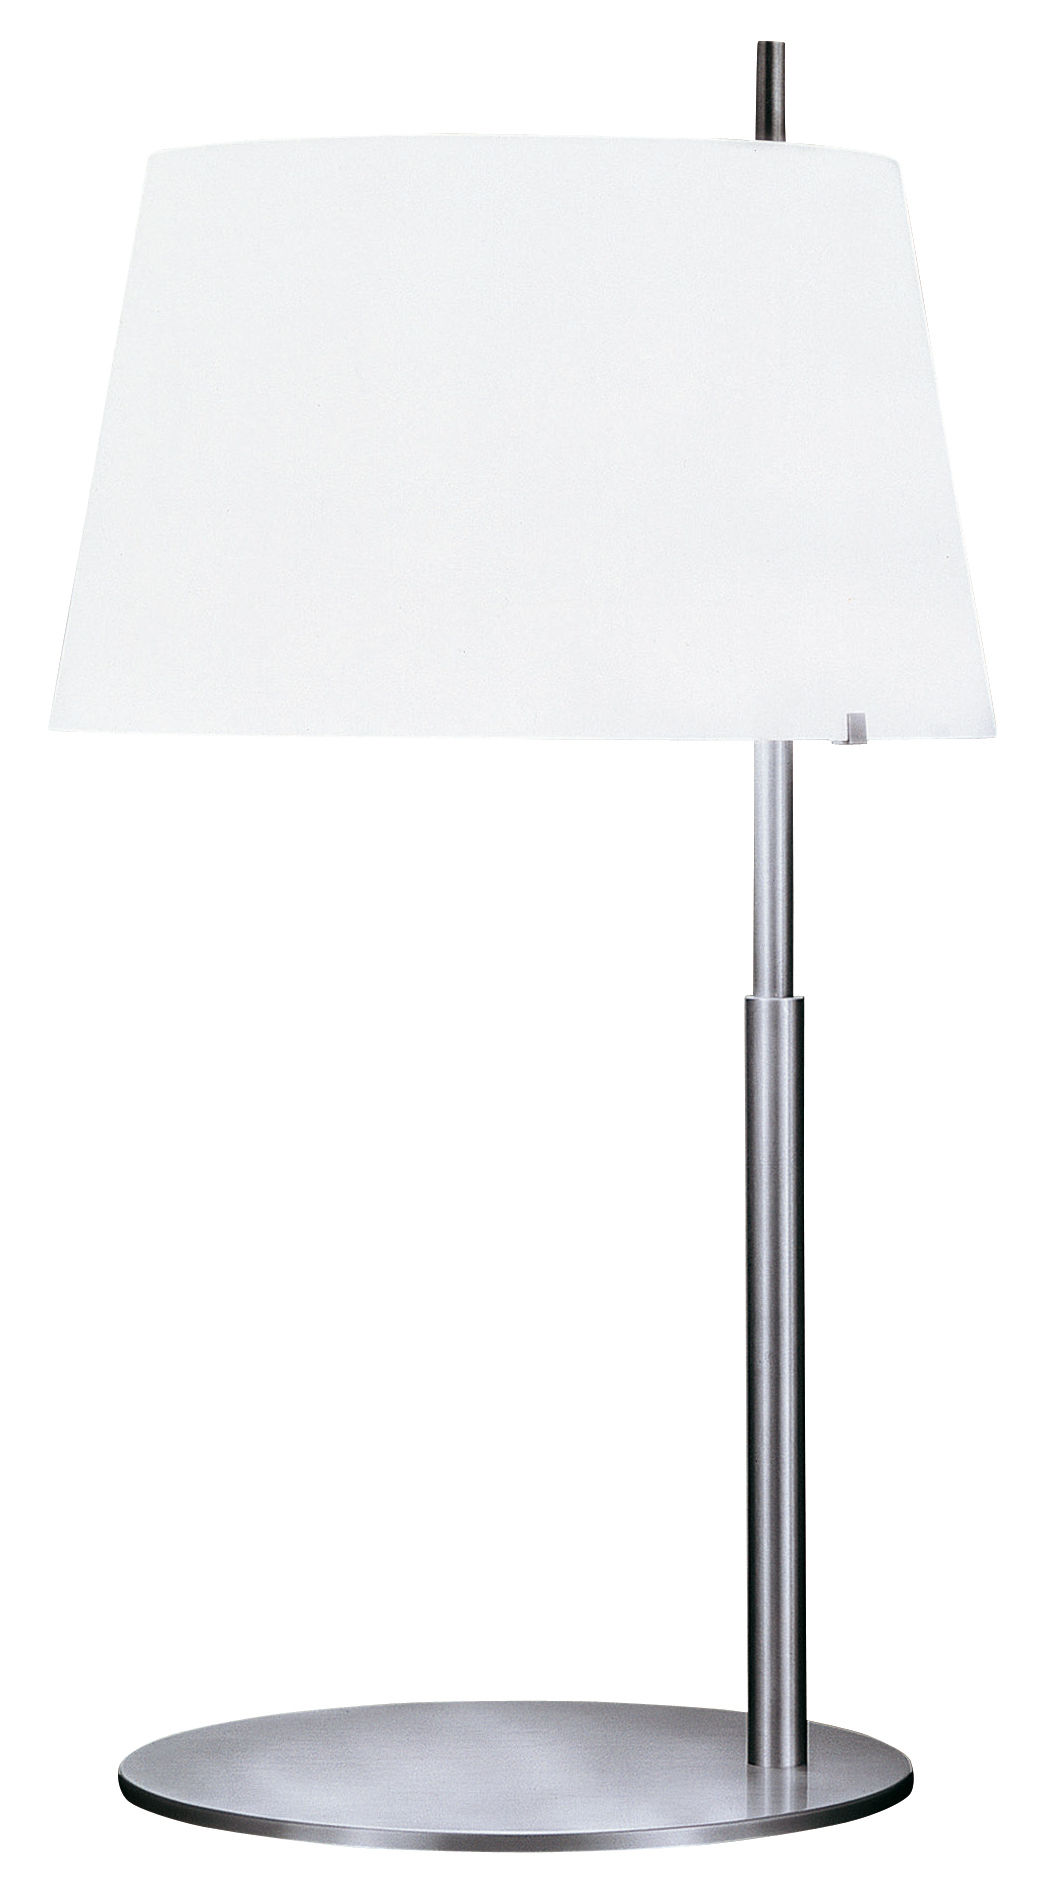 Passion Table Lamp : Home > Lighting > Table lamps > Passion Table lamp by Fontana Arte